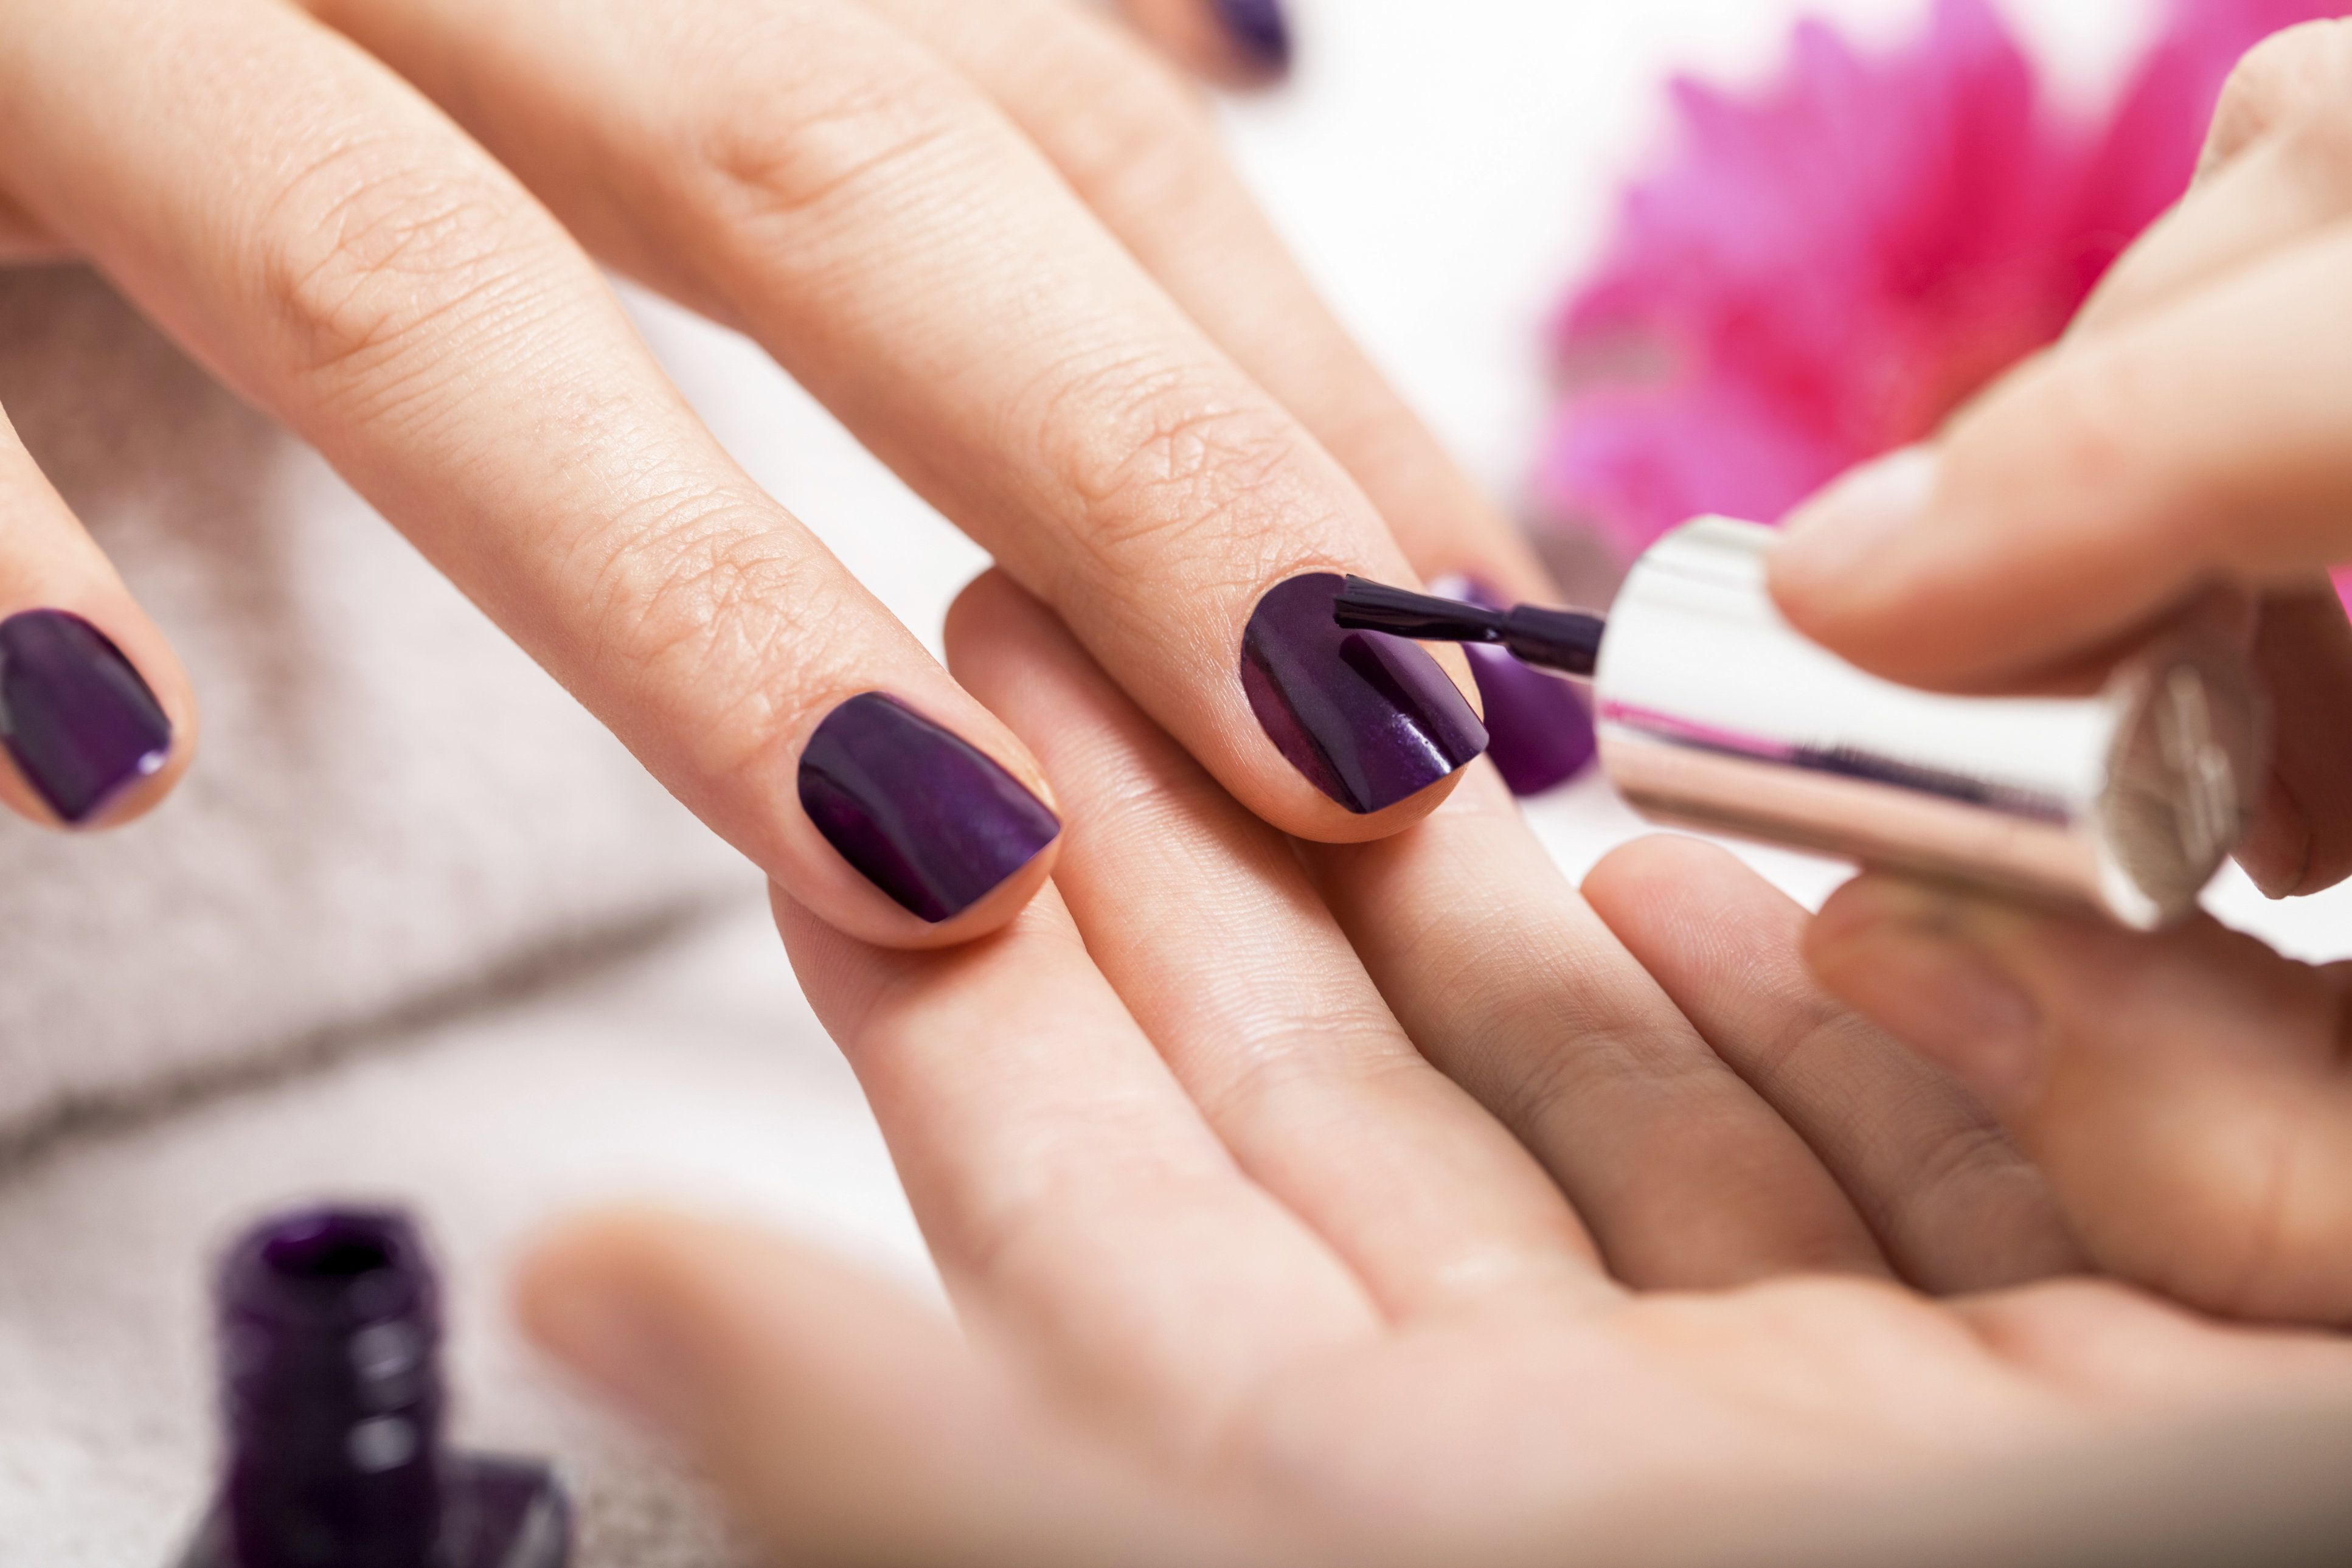 13 dark nail polish colors to try that aren't black | huffpost